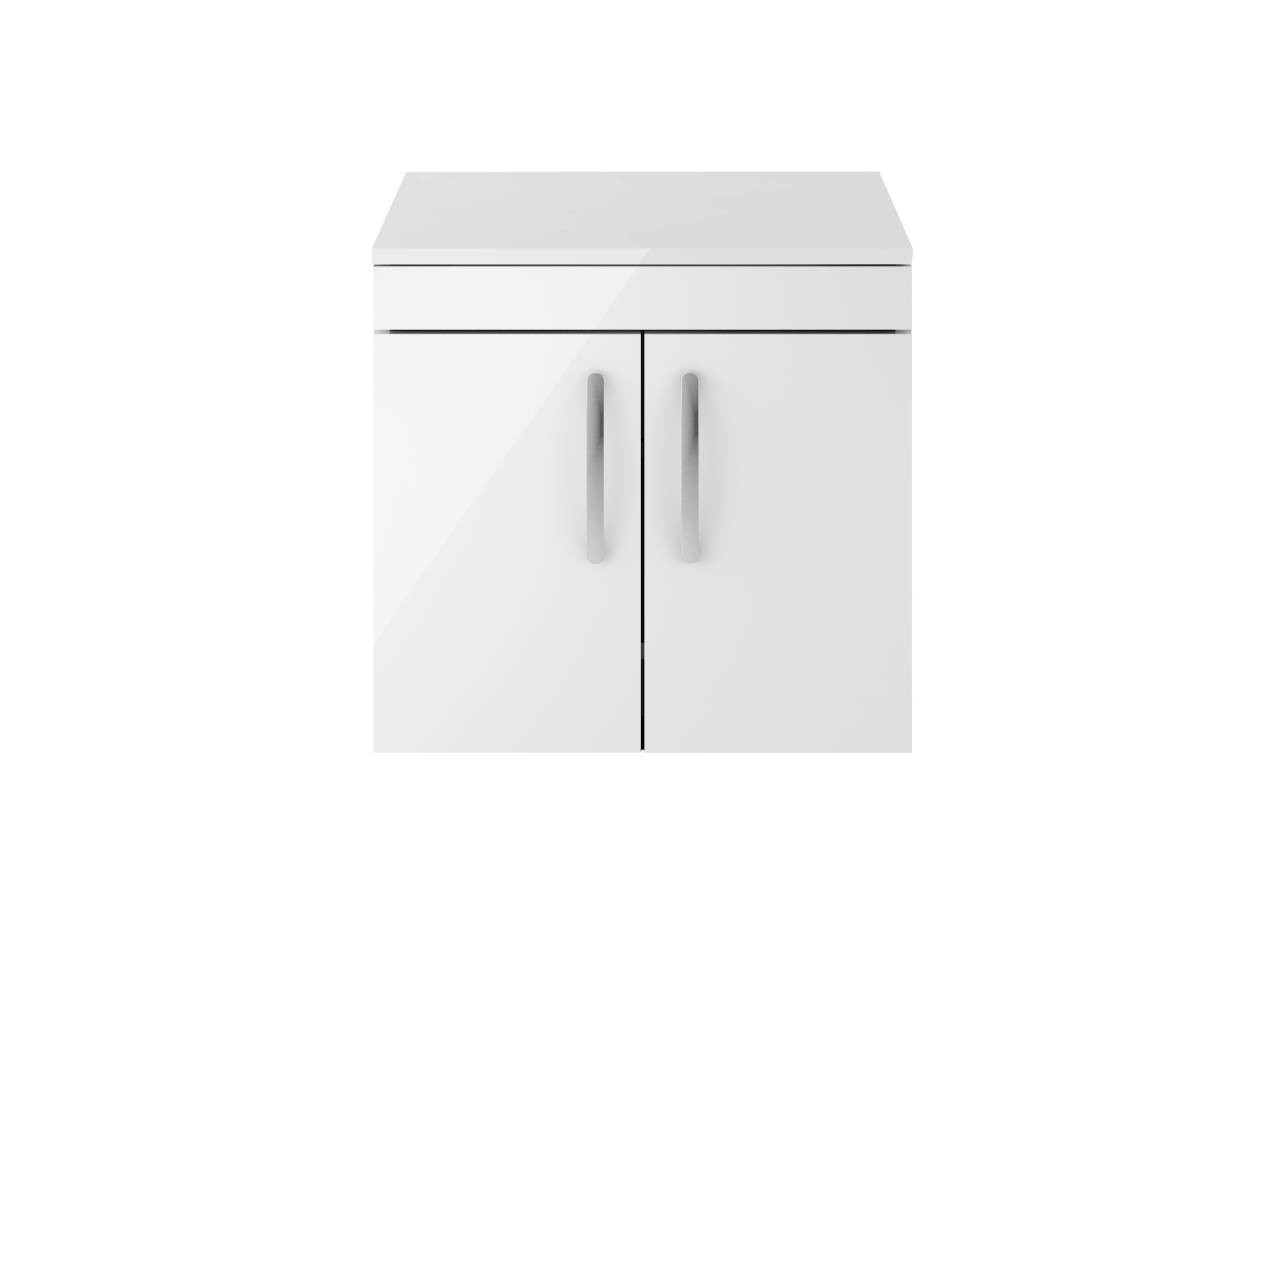 Premier Athena Gloss White 600mm Wall Hung 2 Door Vanity Unit with Worktop - ATH095W